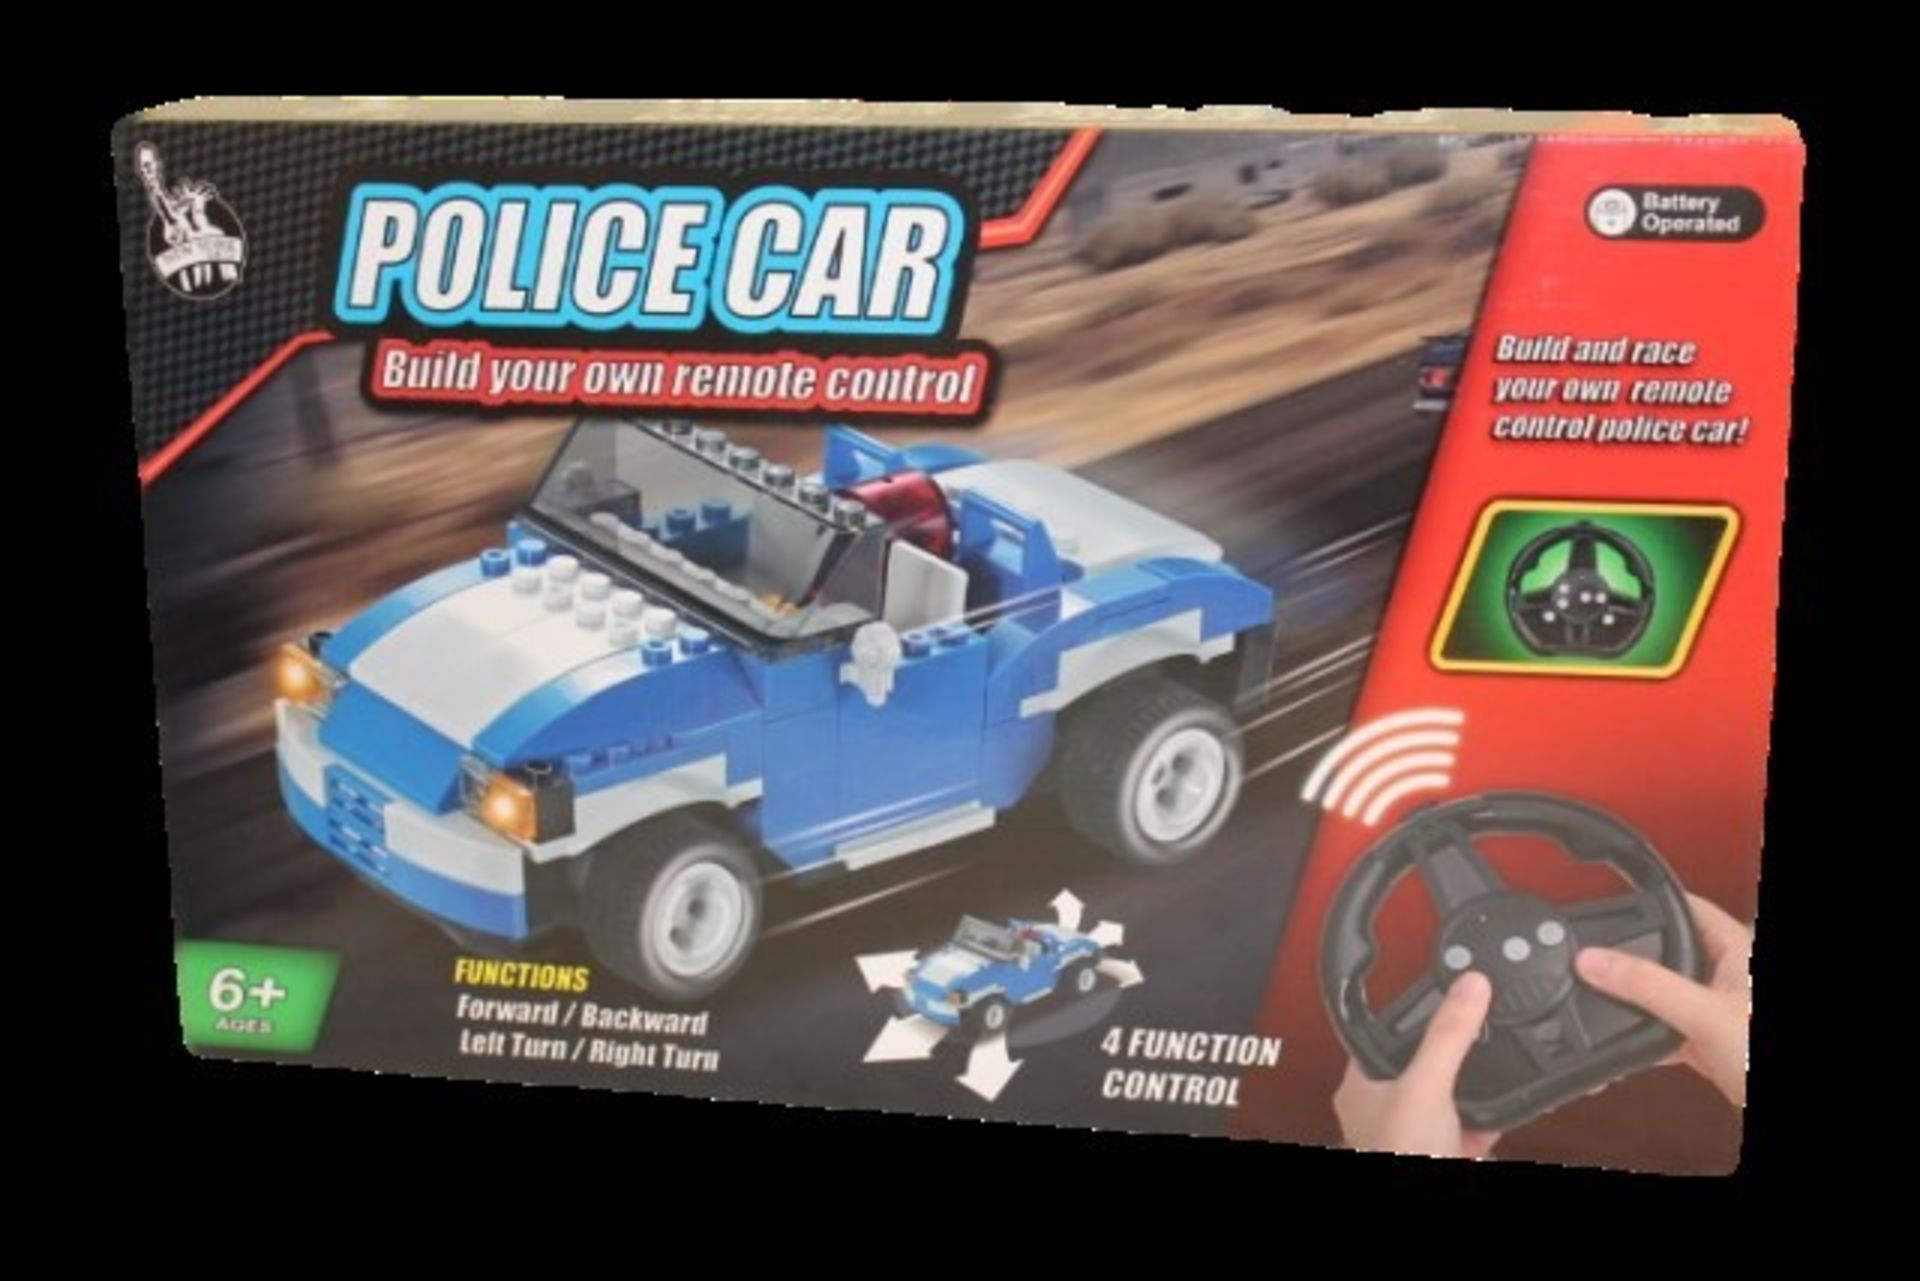 Radio Controlled Build Your Own Lego Police Car Full Function